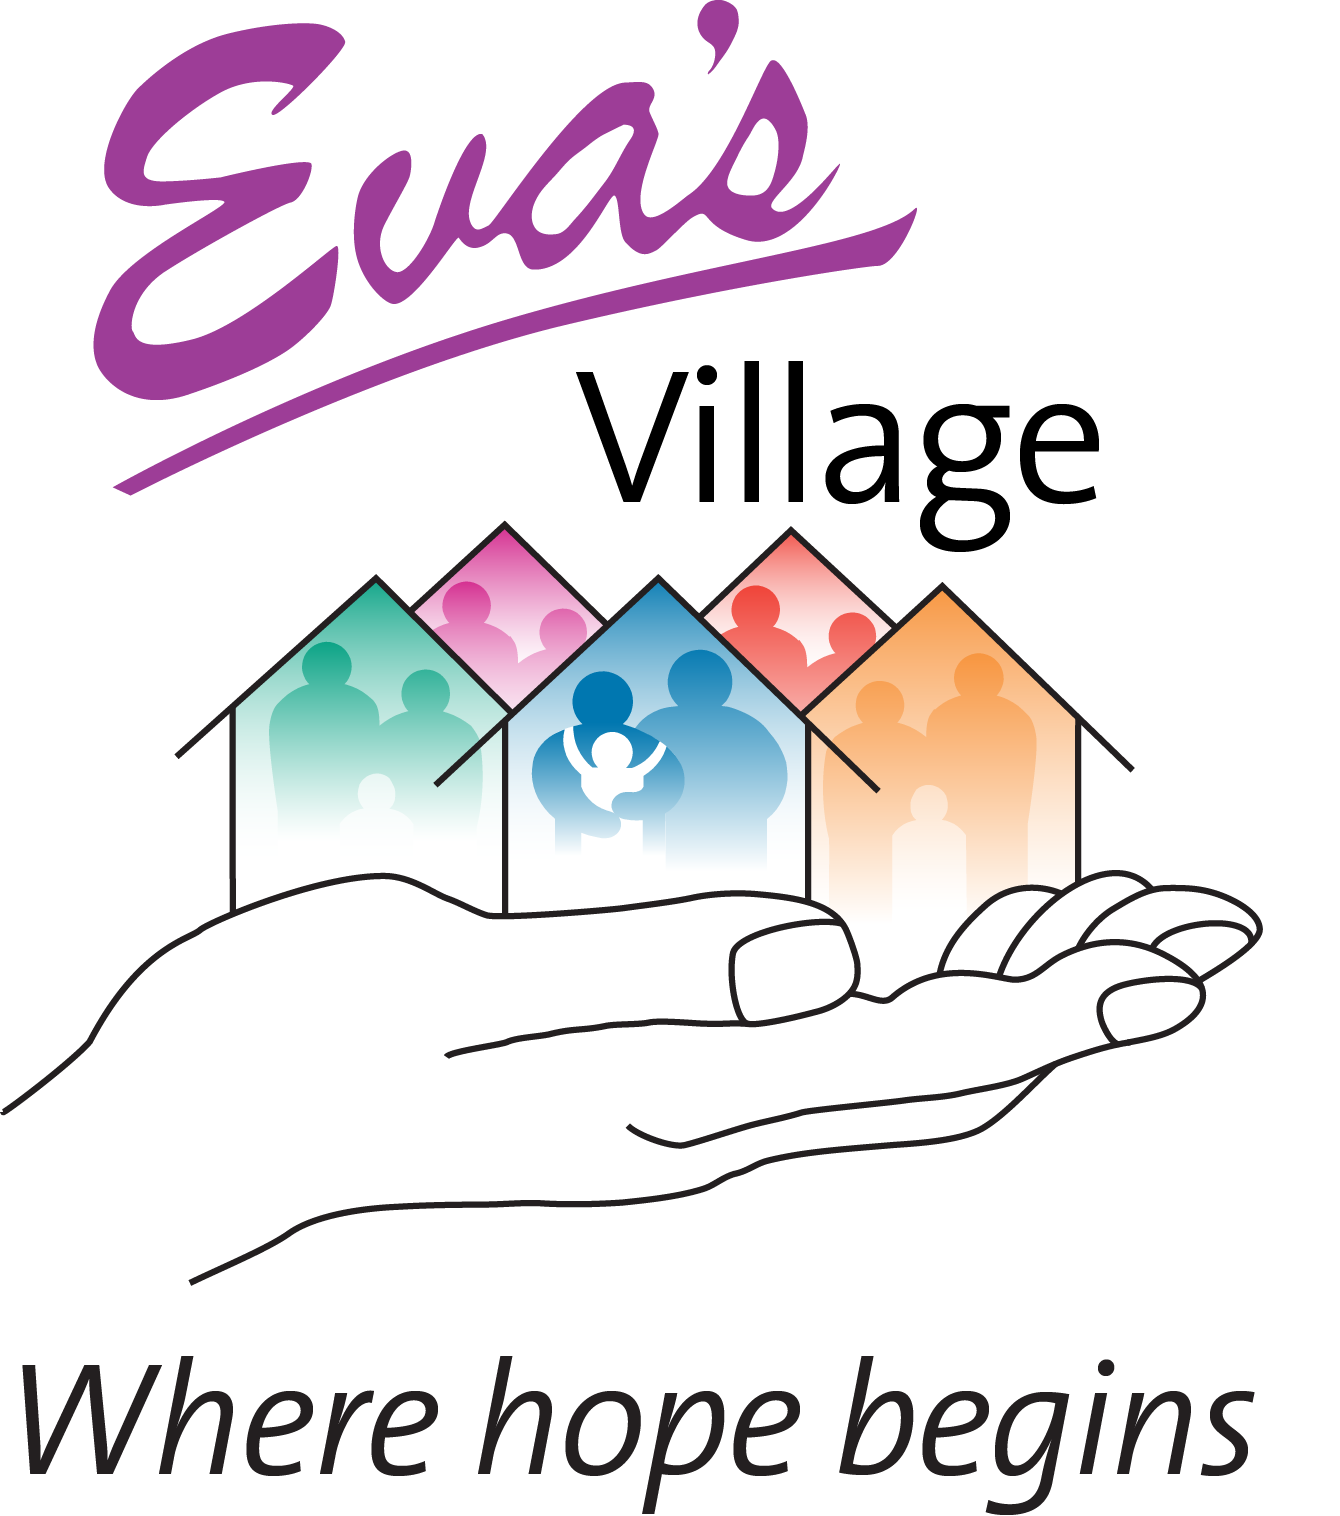 Eva's Village Receives Health Care Product Donations From